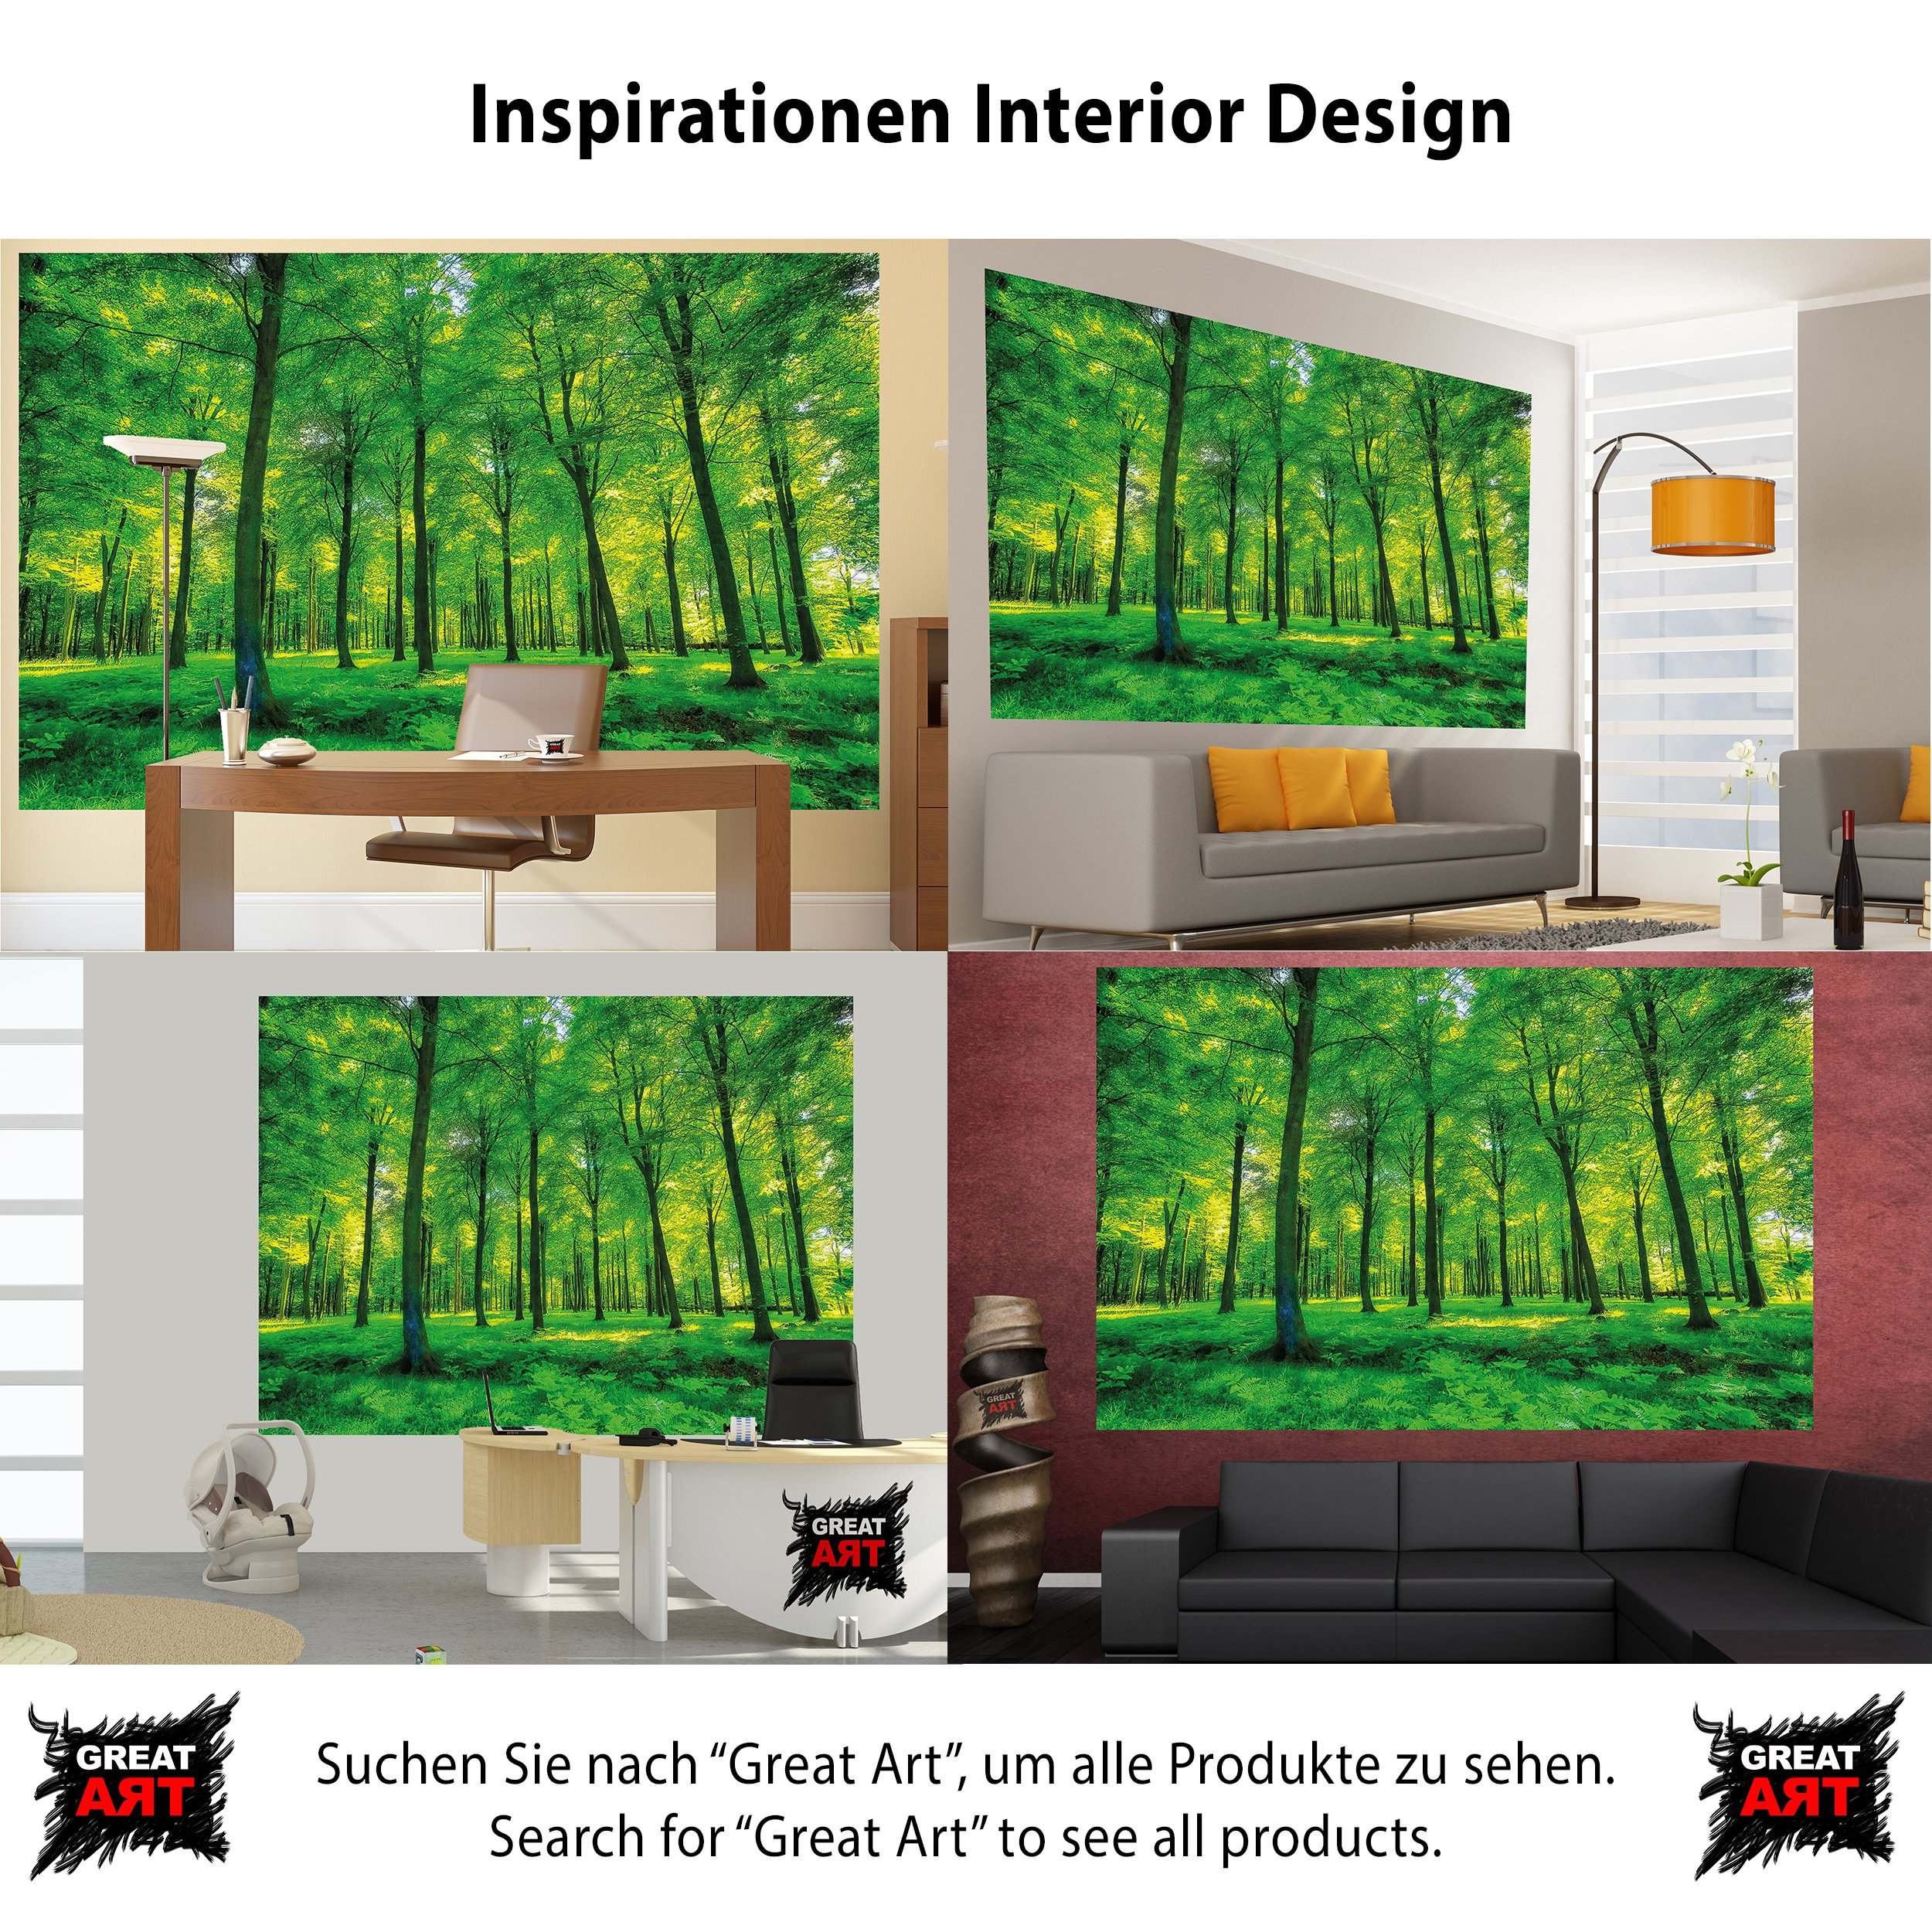 GREAT ART Wallpaper Trees Forest – Nature Wall Photo Decoration Natural Landscape Poster Summer Relax Sun Plants Flora Mural (82.7x55 Inch) by Great Art (Image #4)